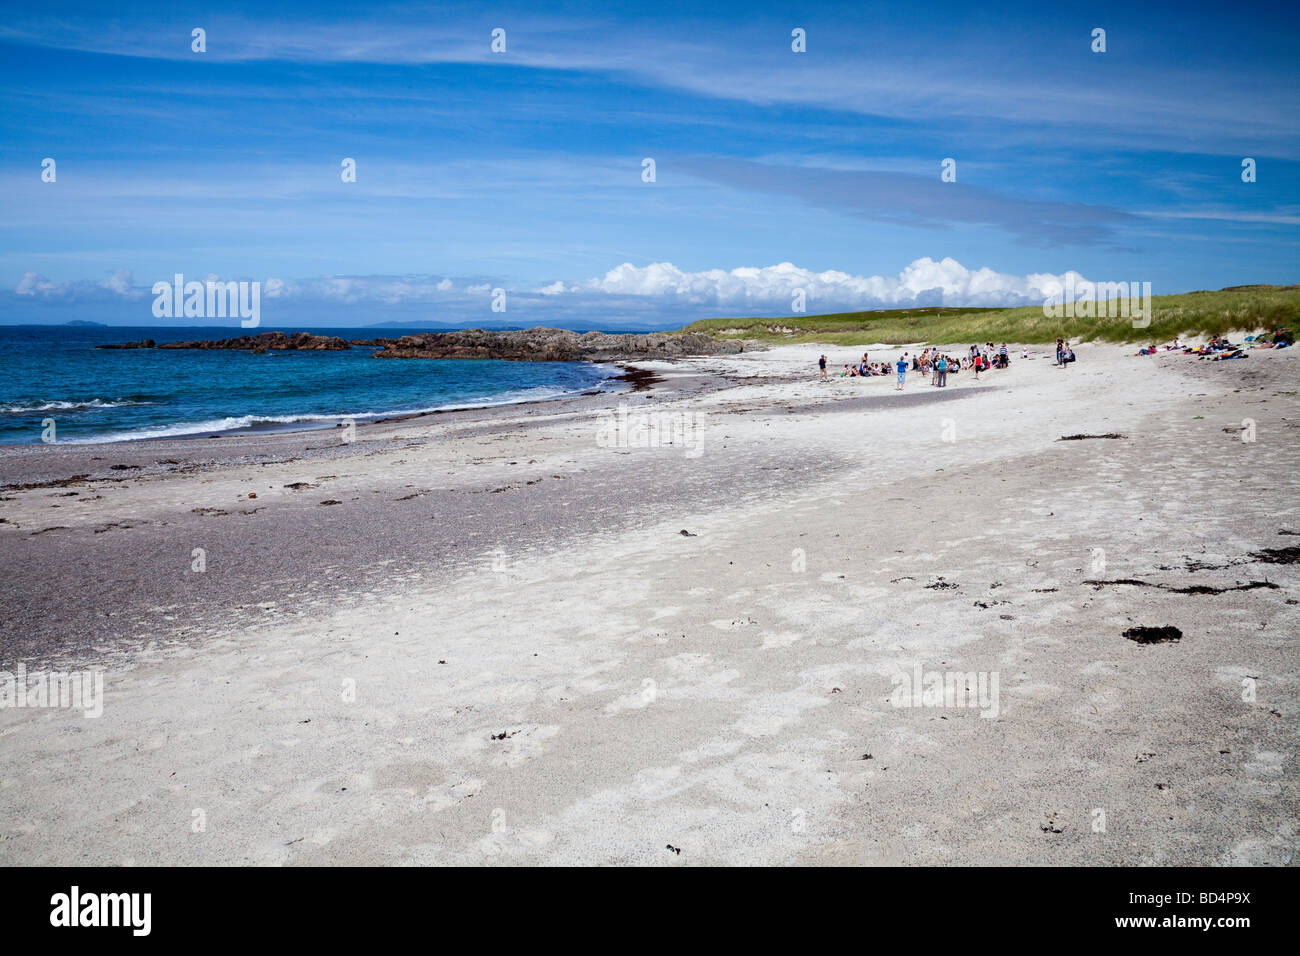 Teenagers playing organised beach games on a white sandy beach on the Island of Iona, in the Inner Hebrides, Argyll, - Stock Image